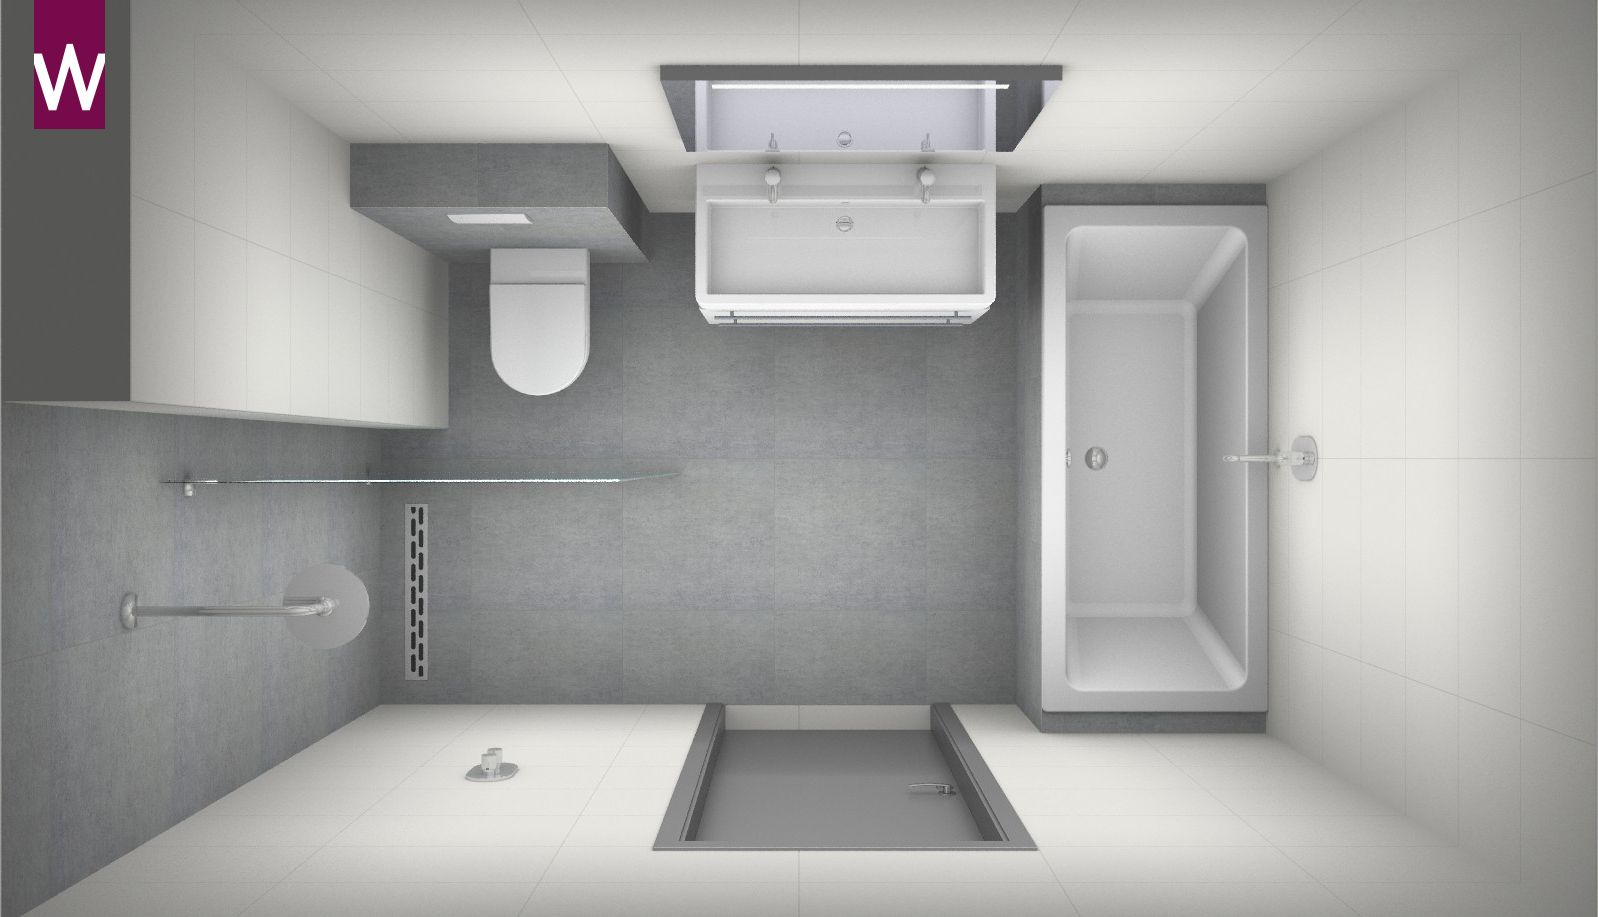 Badkamer ontwerpen? | Small bathroom, Bathroom plans and Bathroom ...